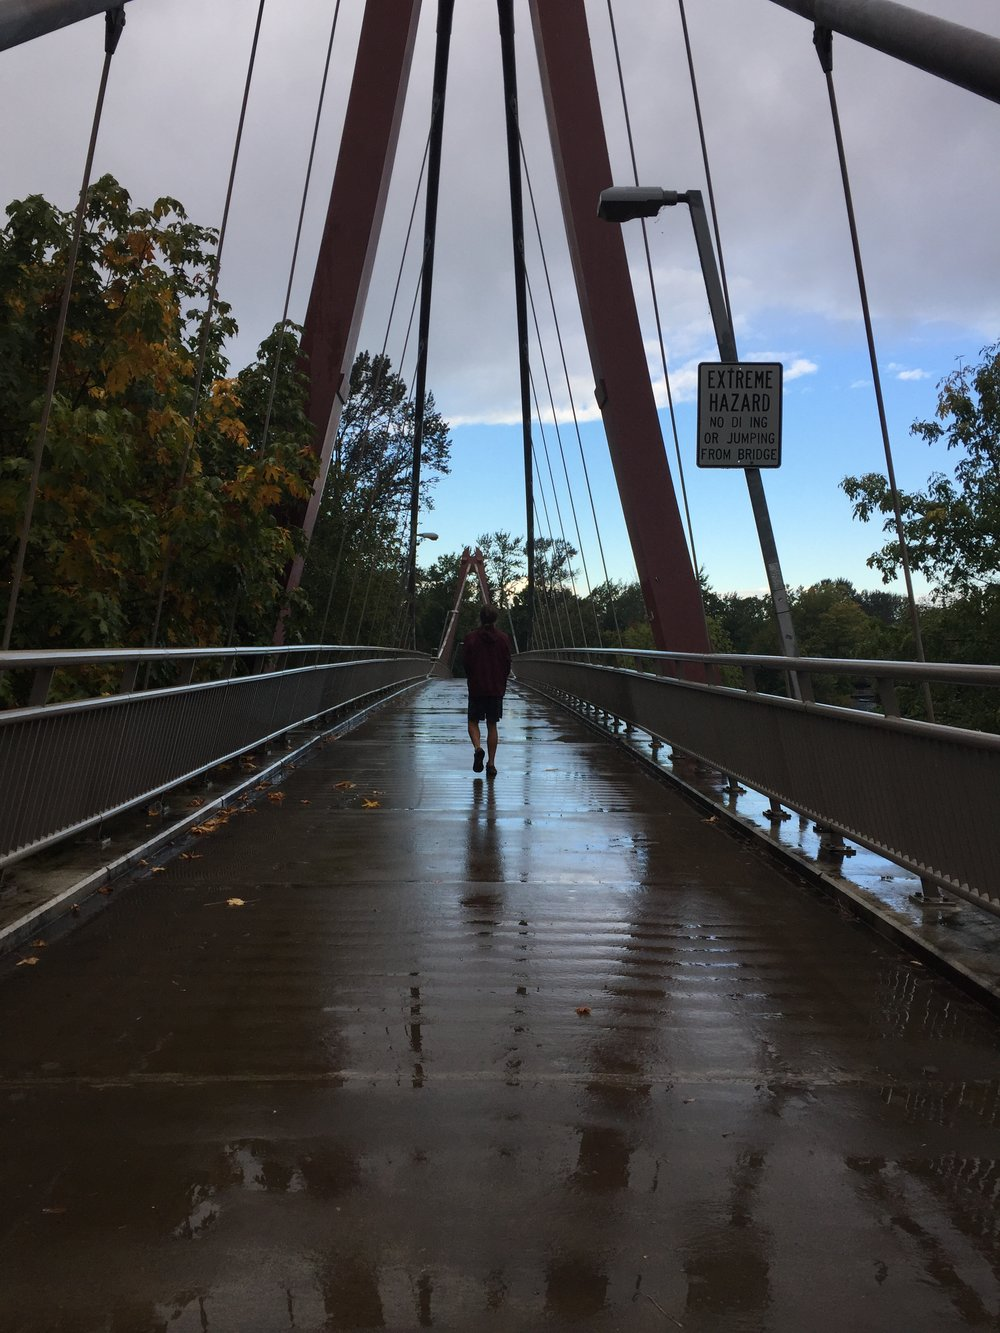 Cosmo walking over one of the bridges leading into a city park